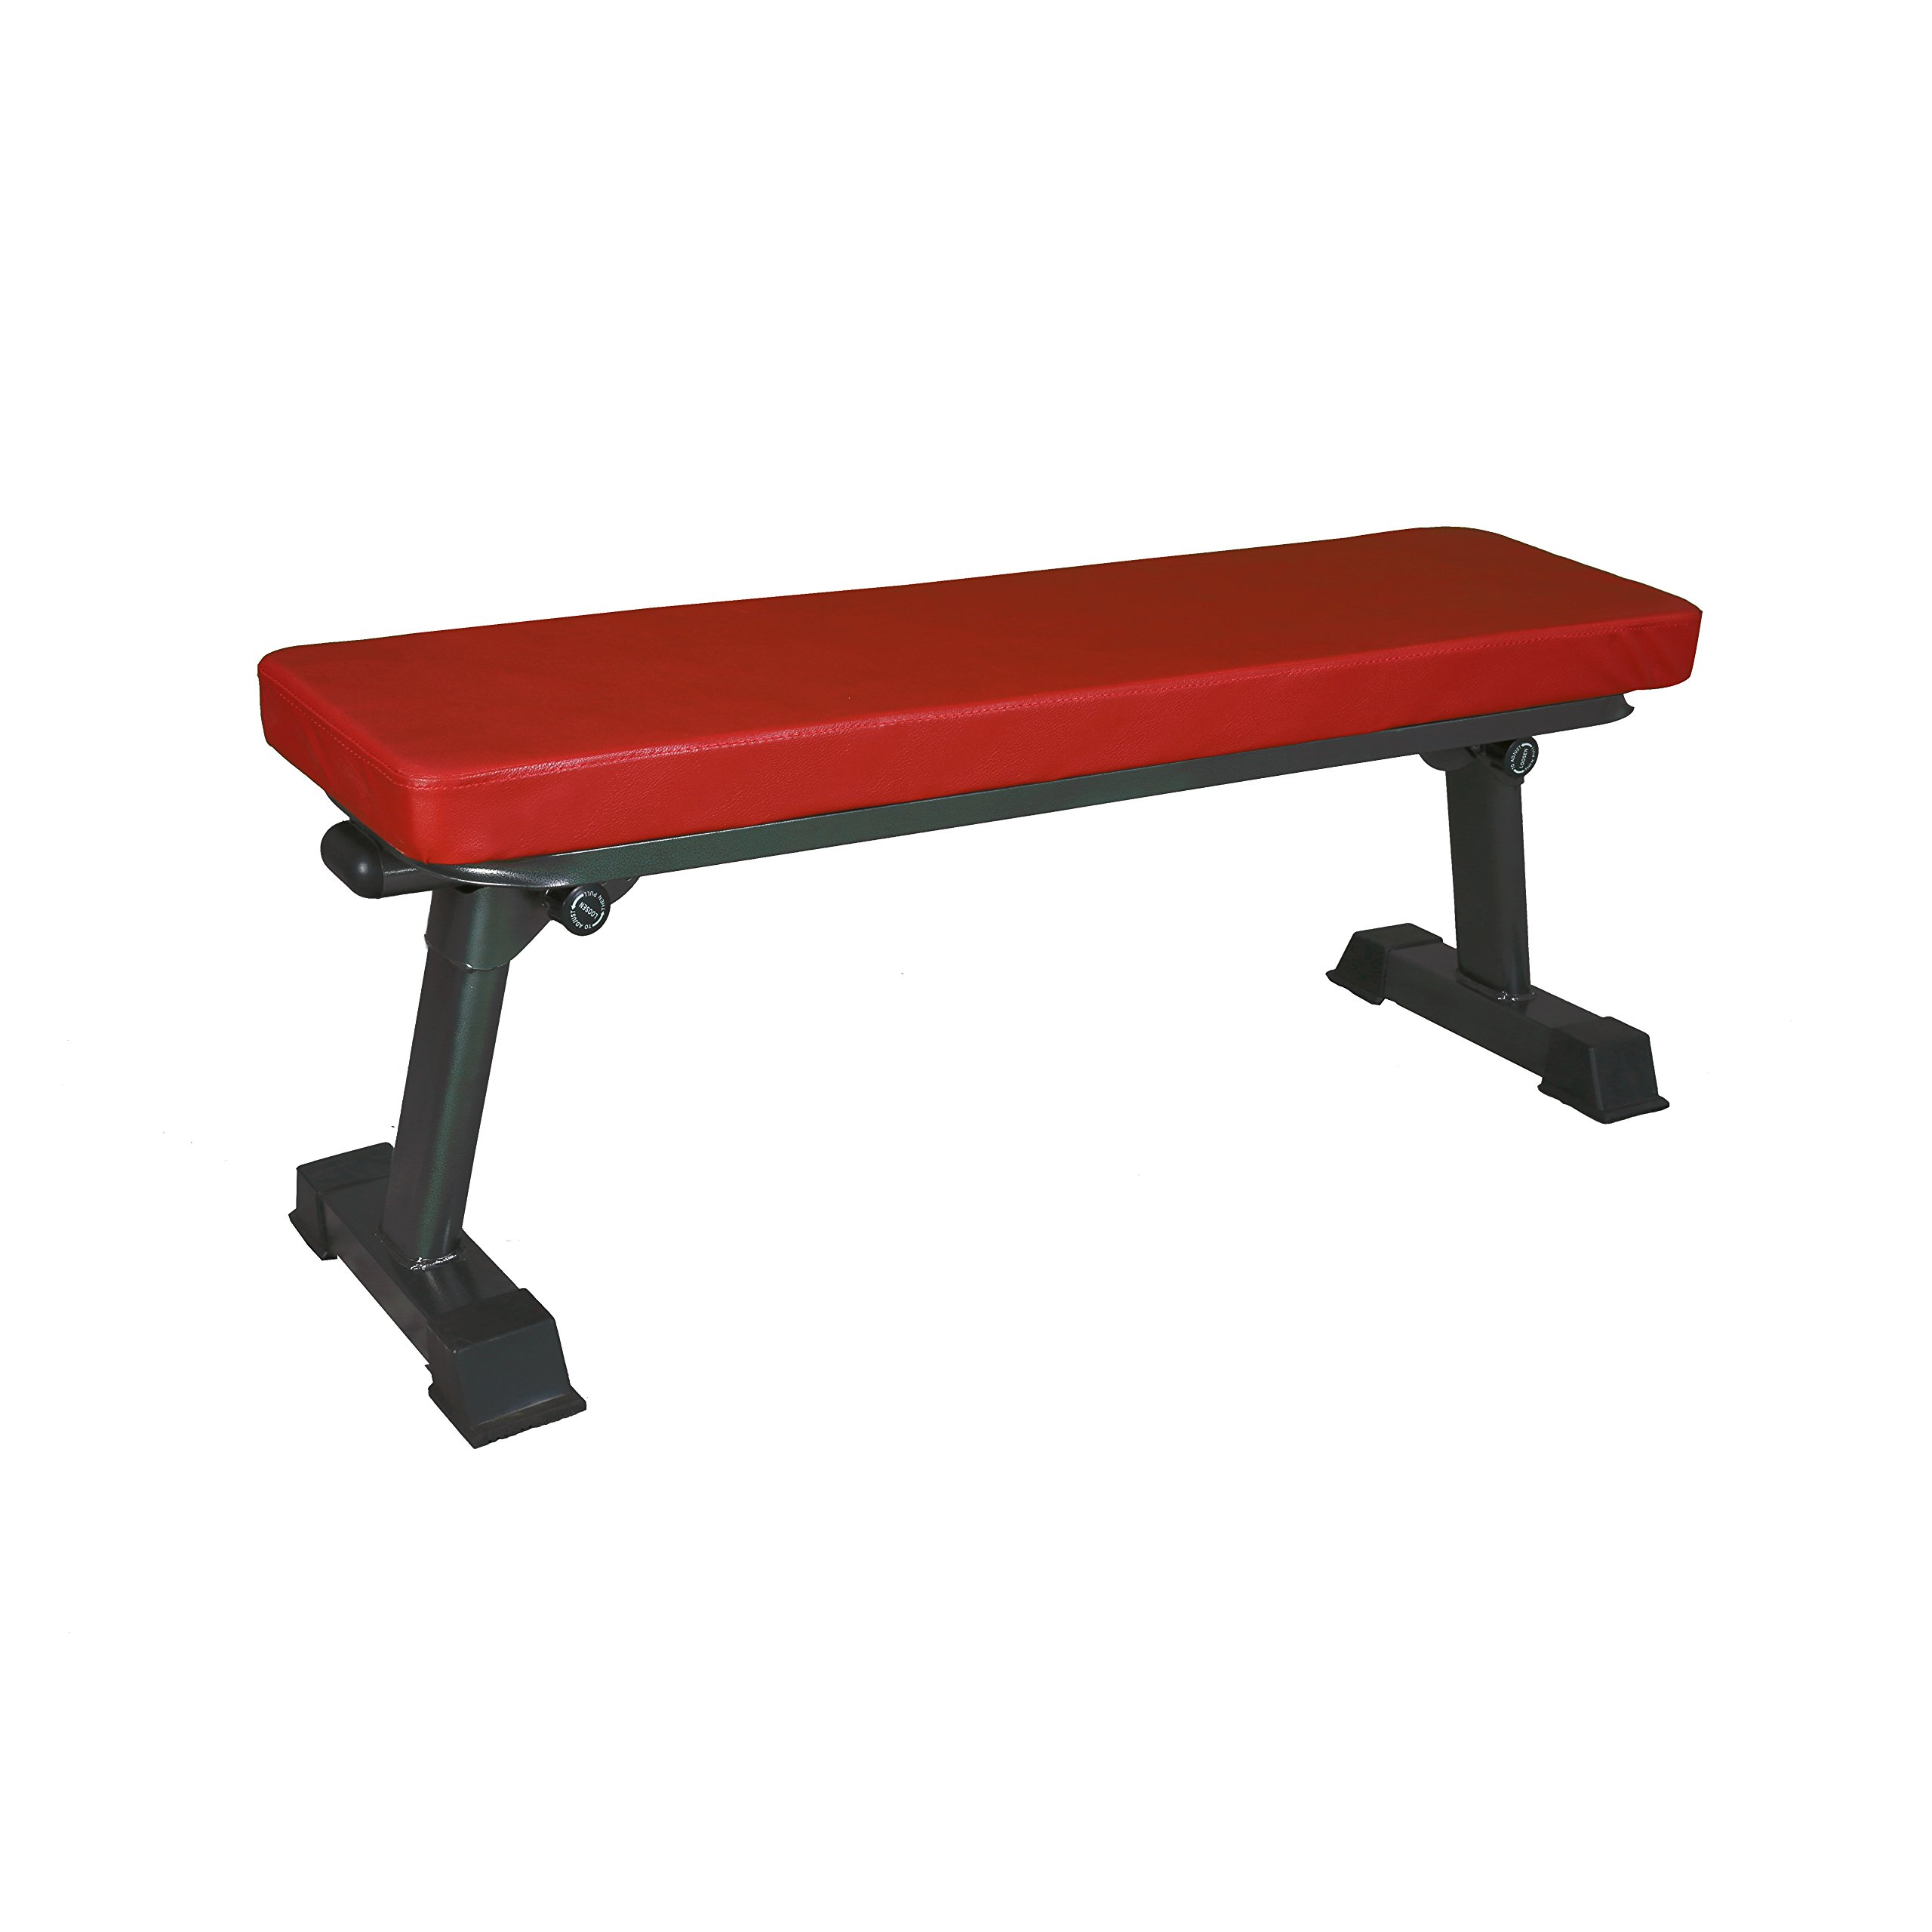 Finer Form Gym Quality Foldable Flat Bench for Multi-Purpose Weight Training and Ab Exercises (Red)